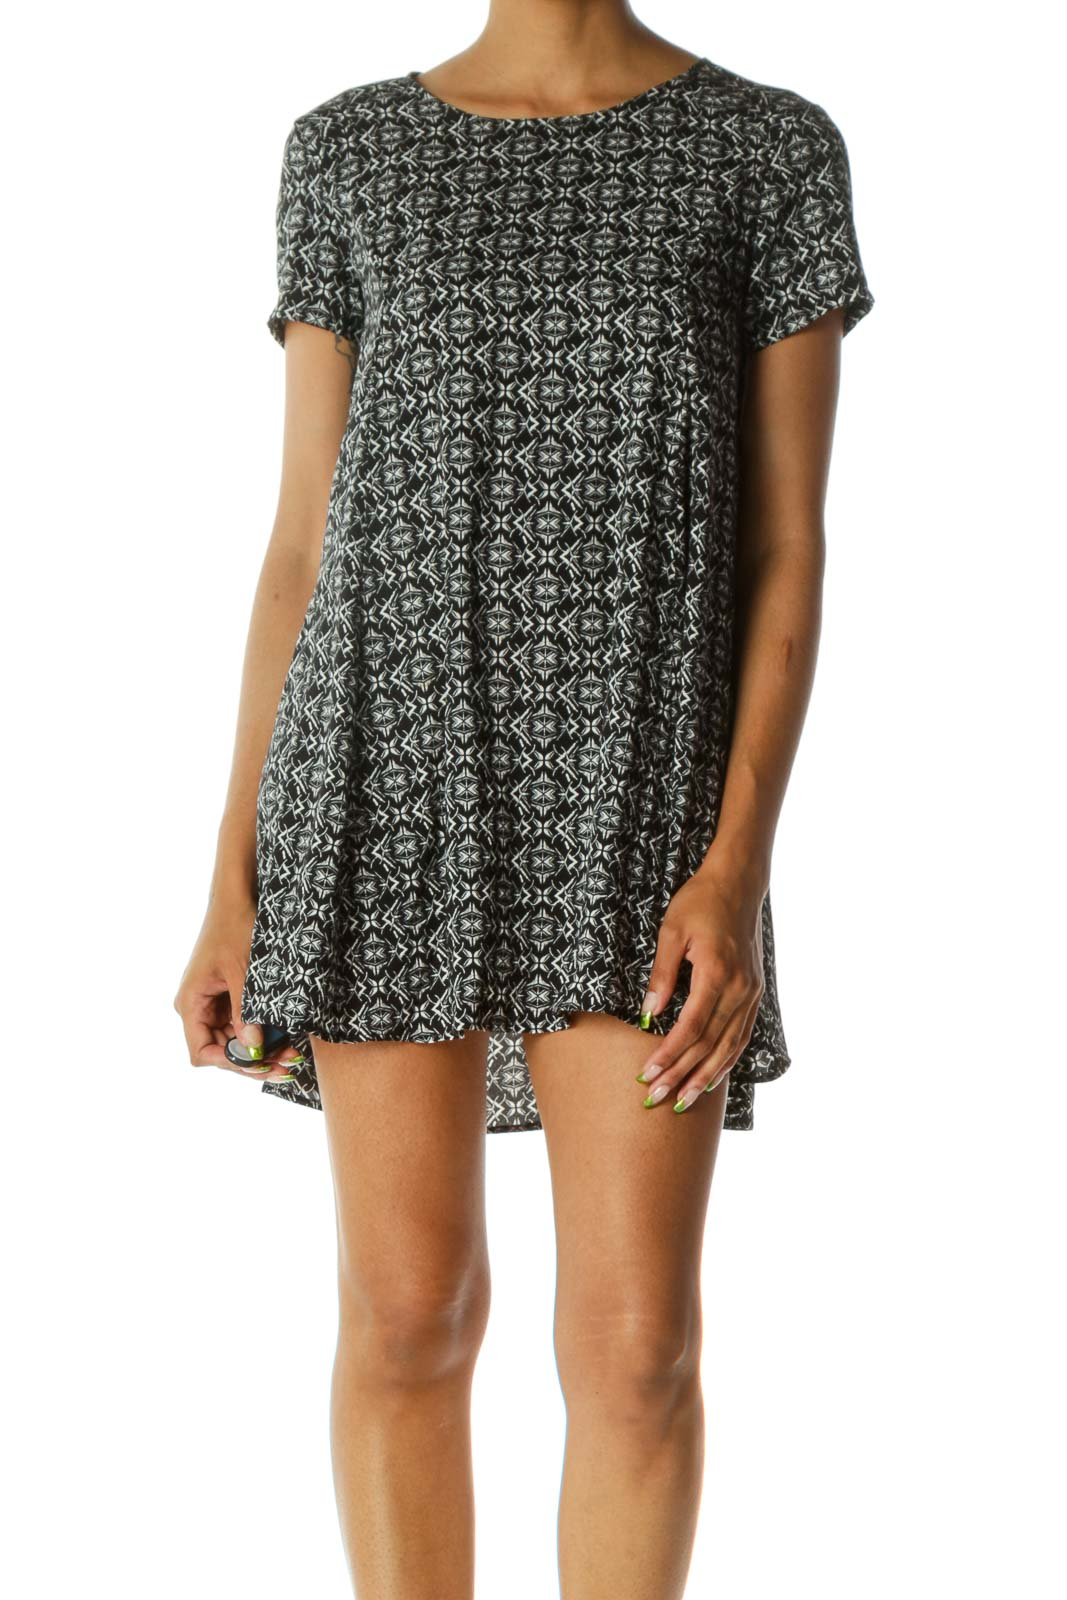 Black White Print Round Neck Short Sleeve Flared Dress